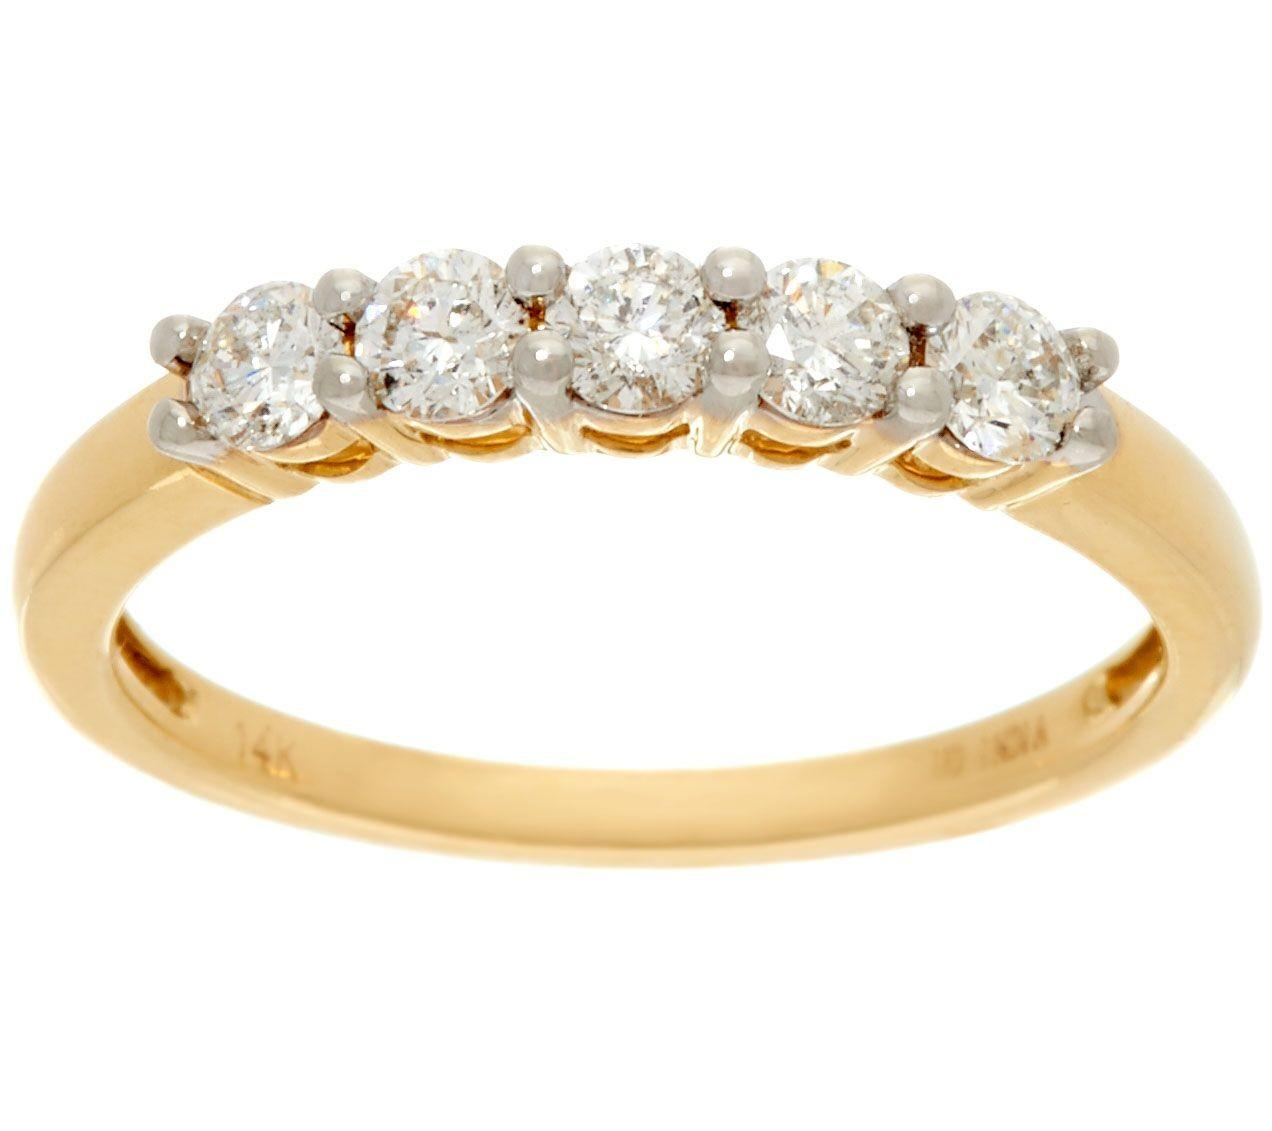 Stone Diamond Band Ring 14k Gold